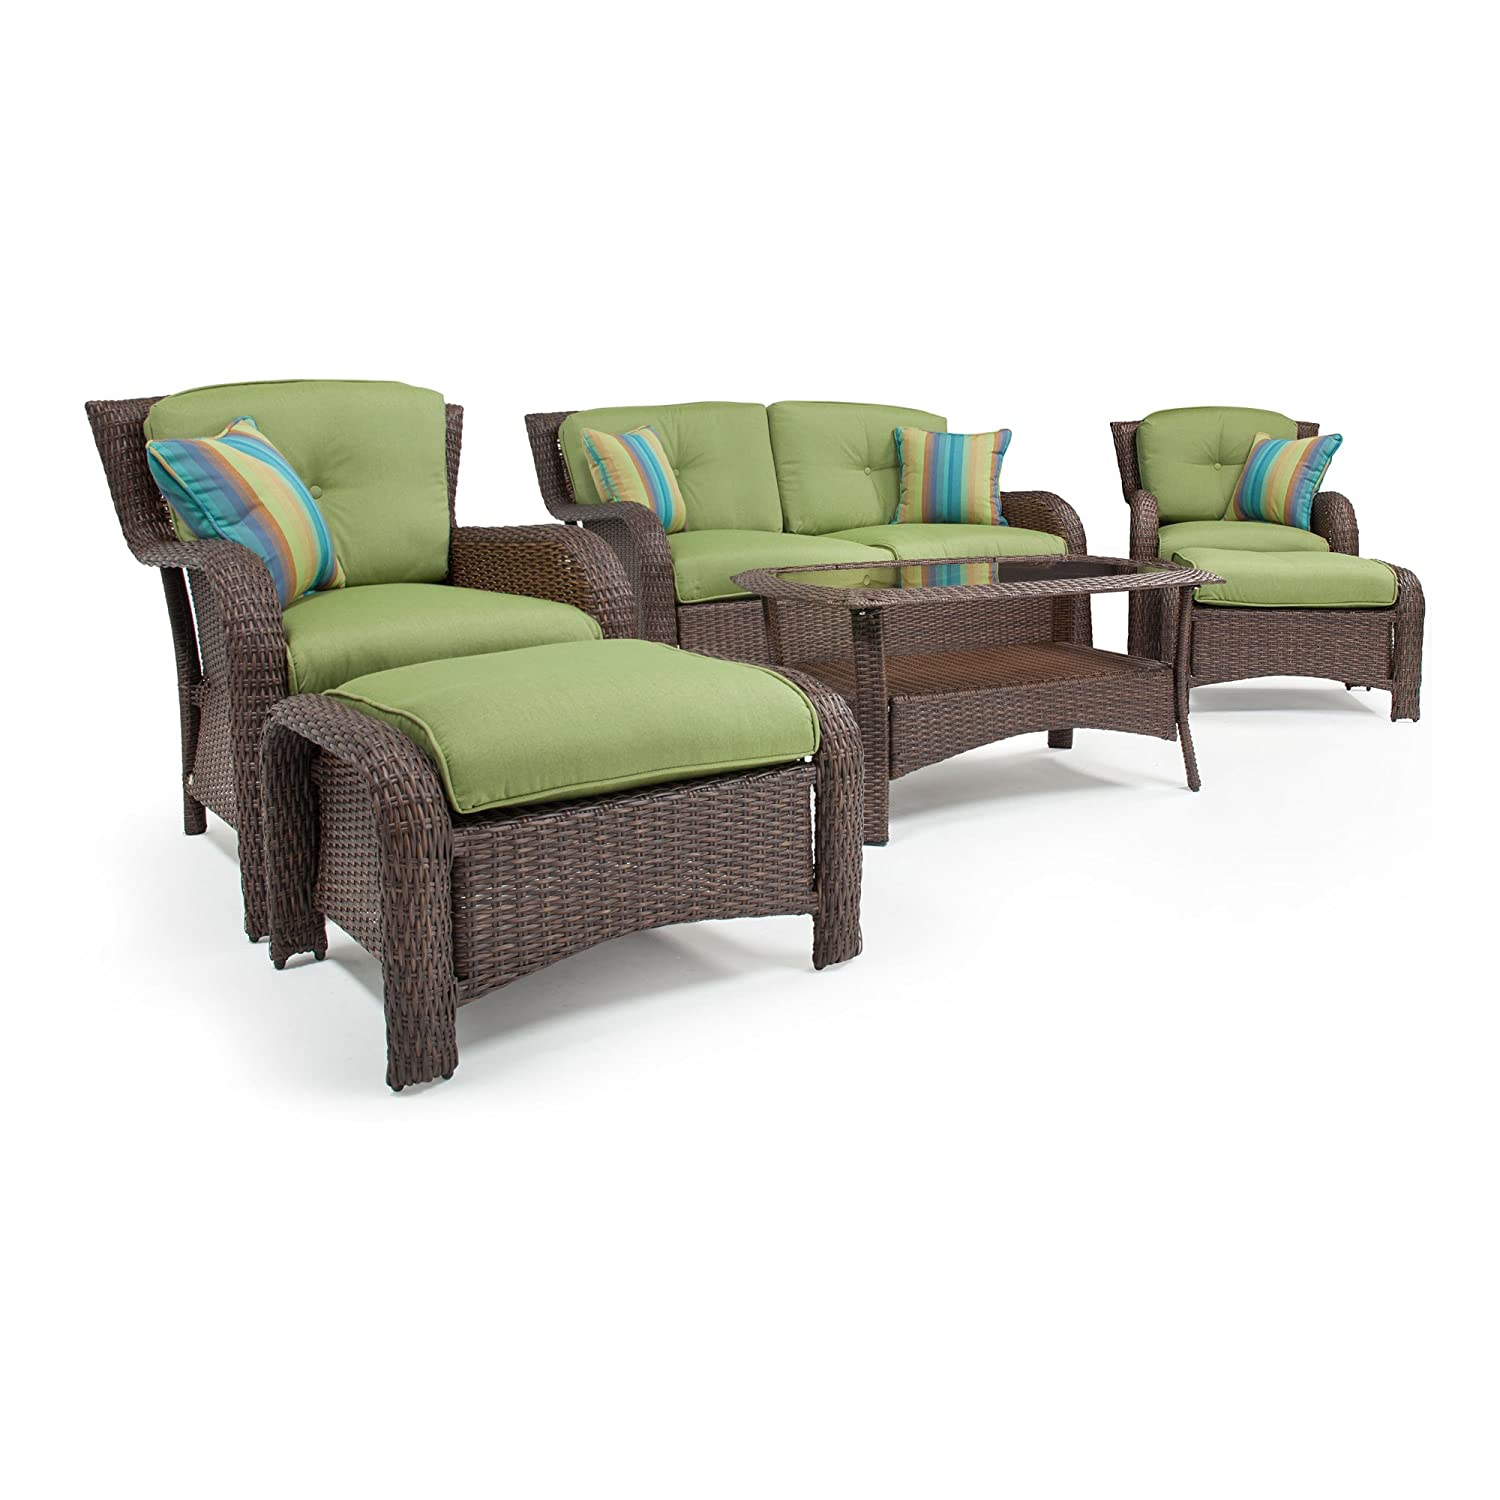 Amazon.com: La Z Boy Outdoor Sawyer 6 Piece Resin Wicker Patio Furniture  Conversation Set (Cilantro Green) With All Weather Sunbrella Cushions:  Garden U0026 ...